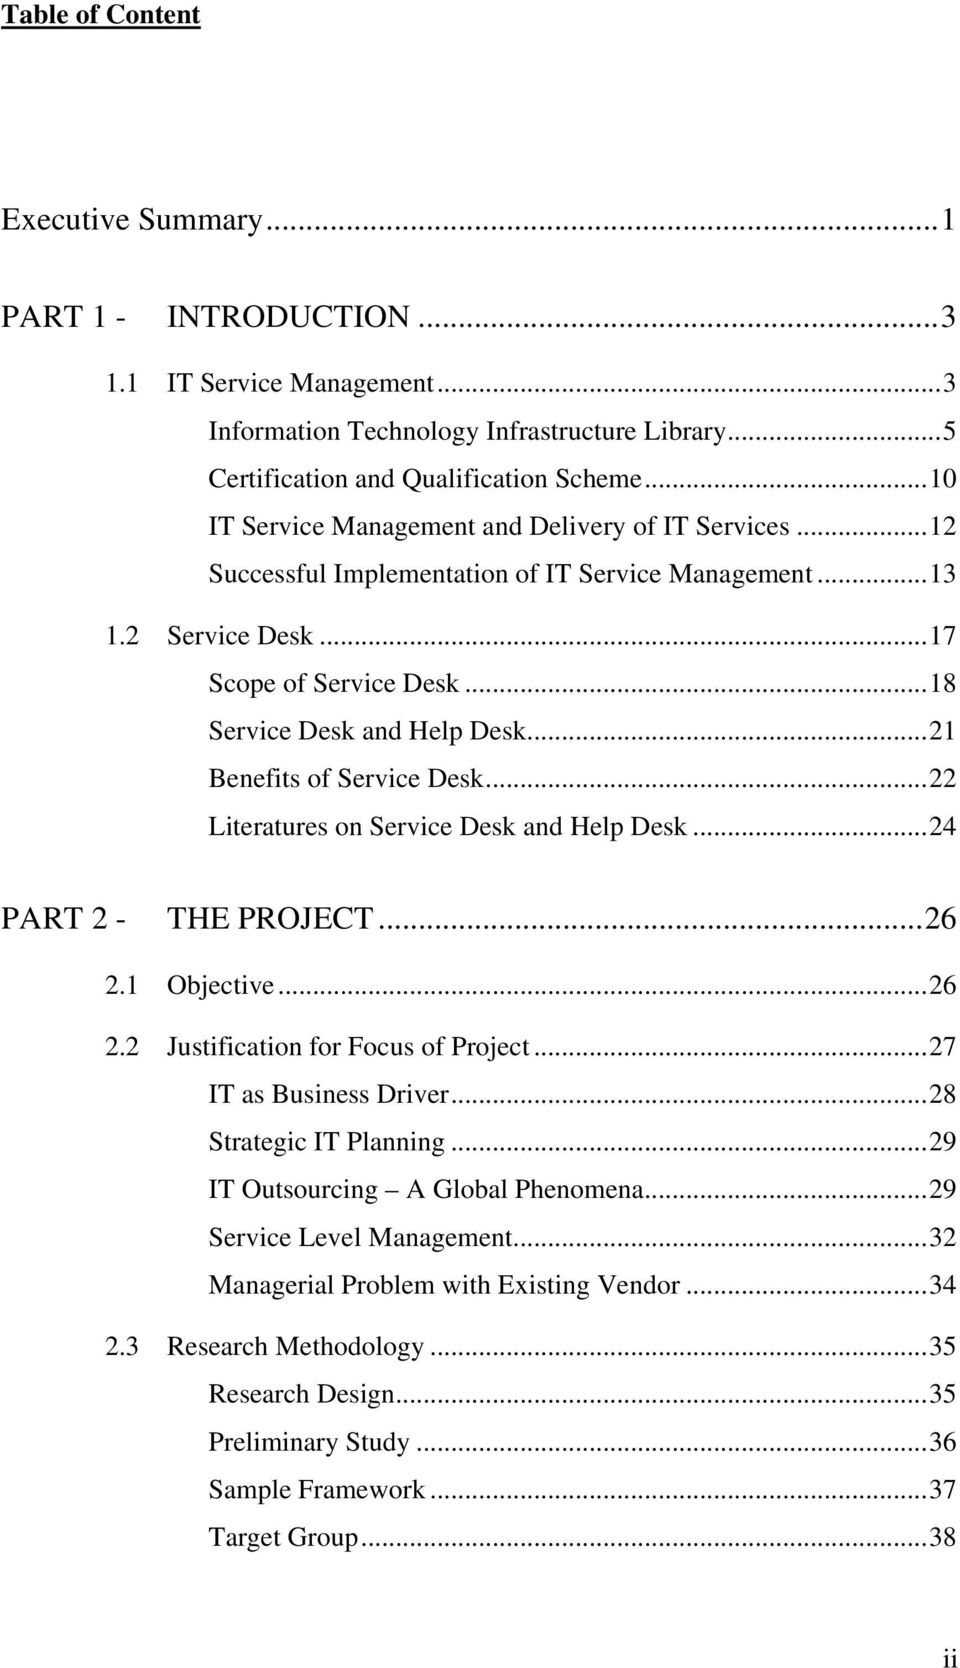 ..21 Benefits of Service Desk...22 Literatures on Service Desk and Help Desk...24 PART 2 - THE PROJECT...26 2.1 Objective...26 2.2 Justification for Focus of Project...27 IT as Business Driver.